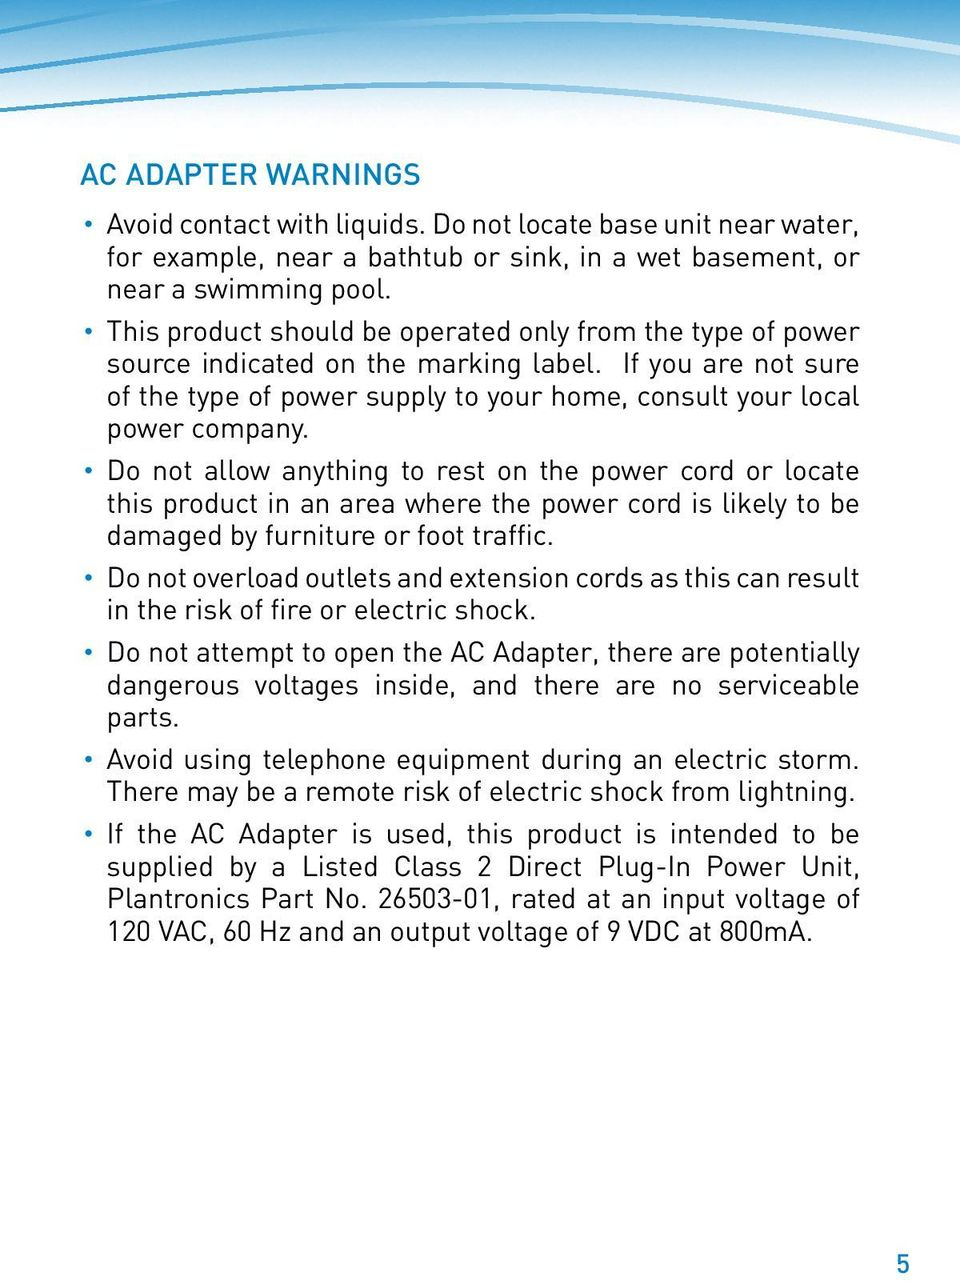 Do not allow anything to rest on the power cord or locate this product in an area where the power cord is likely to be damaged by furniture or foot traffic.